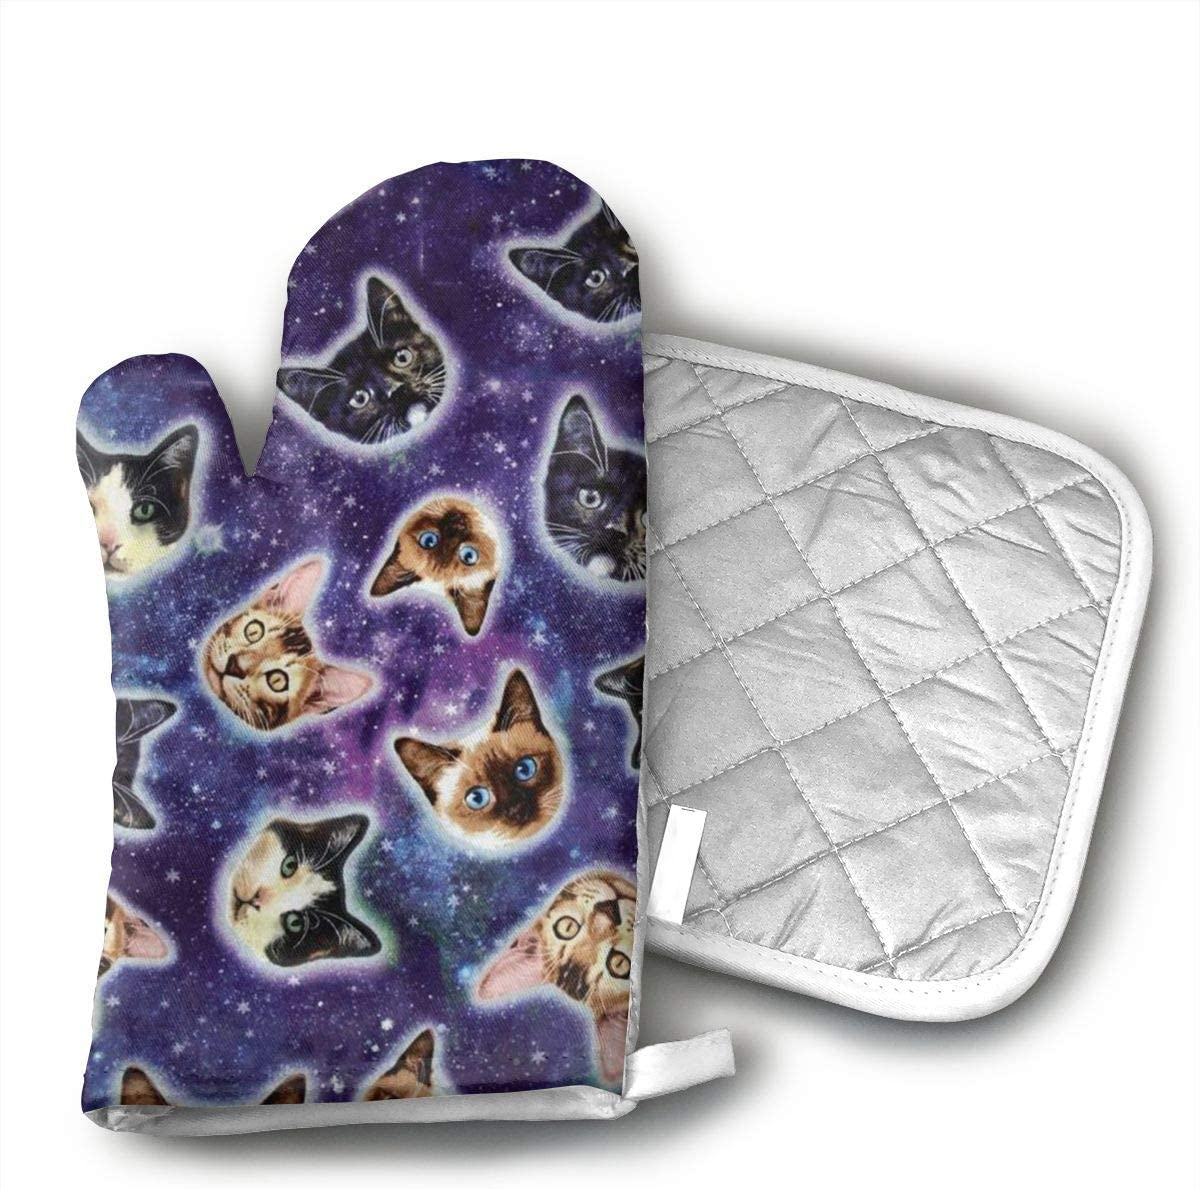 Wiqo9 Galaxy Space Funny Kitten Cat Oven Mitts and Pot Holders Kitchen Mitten Cooking Gloves,Cooking, Baking, BBQ.